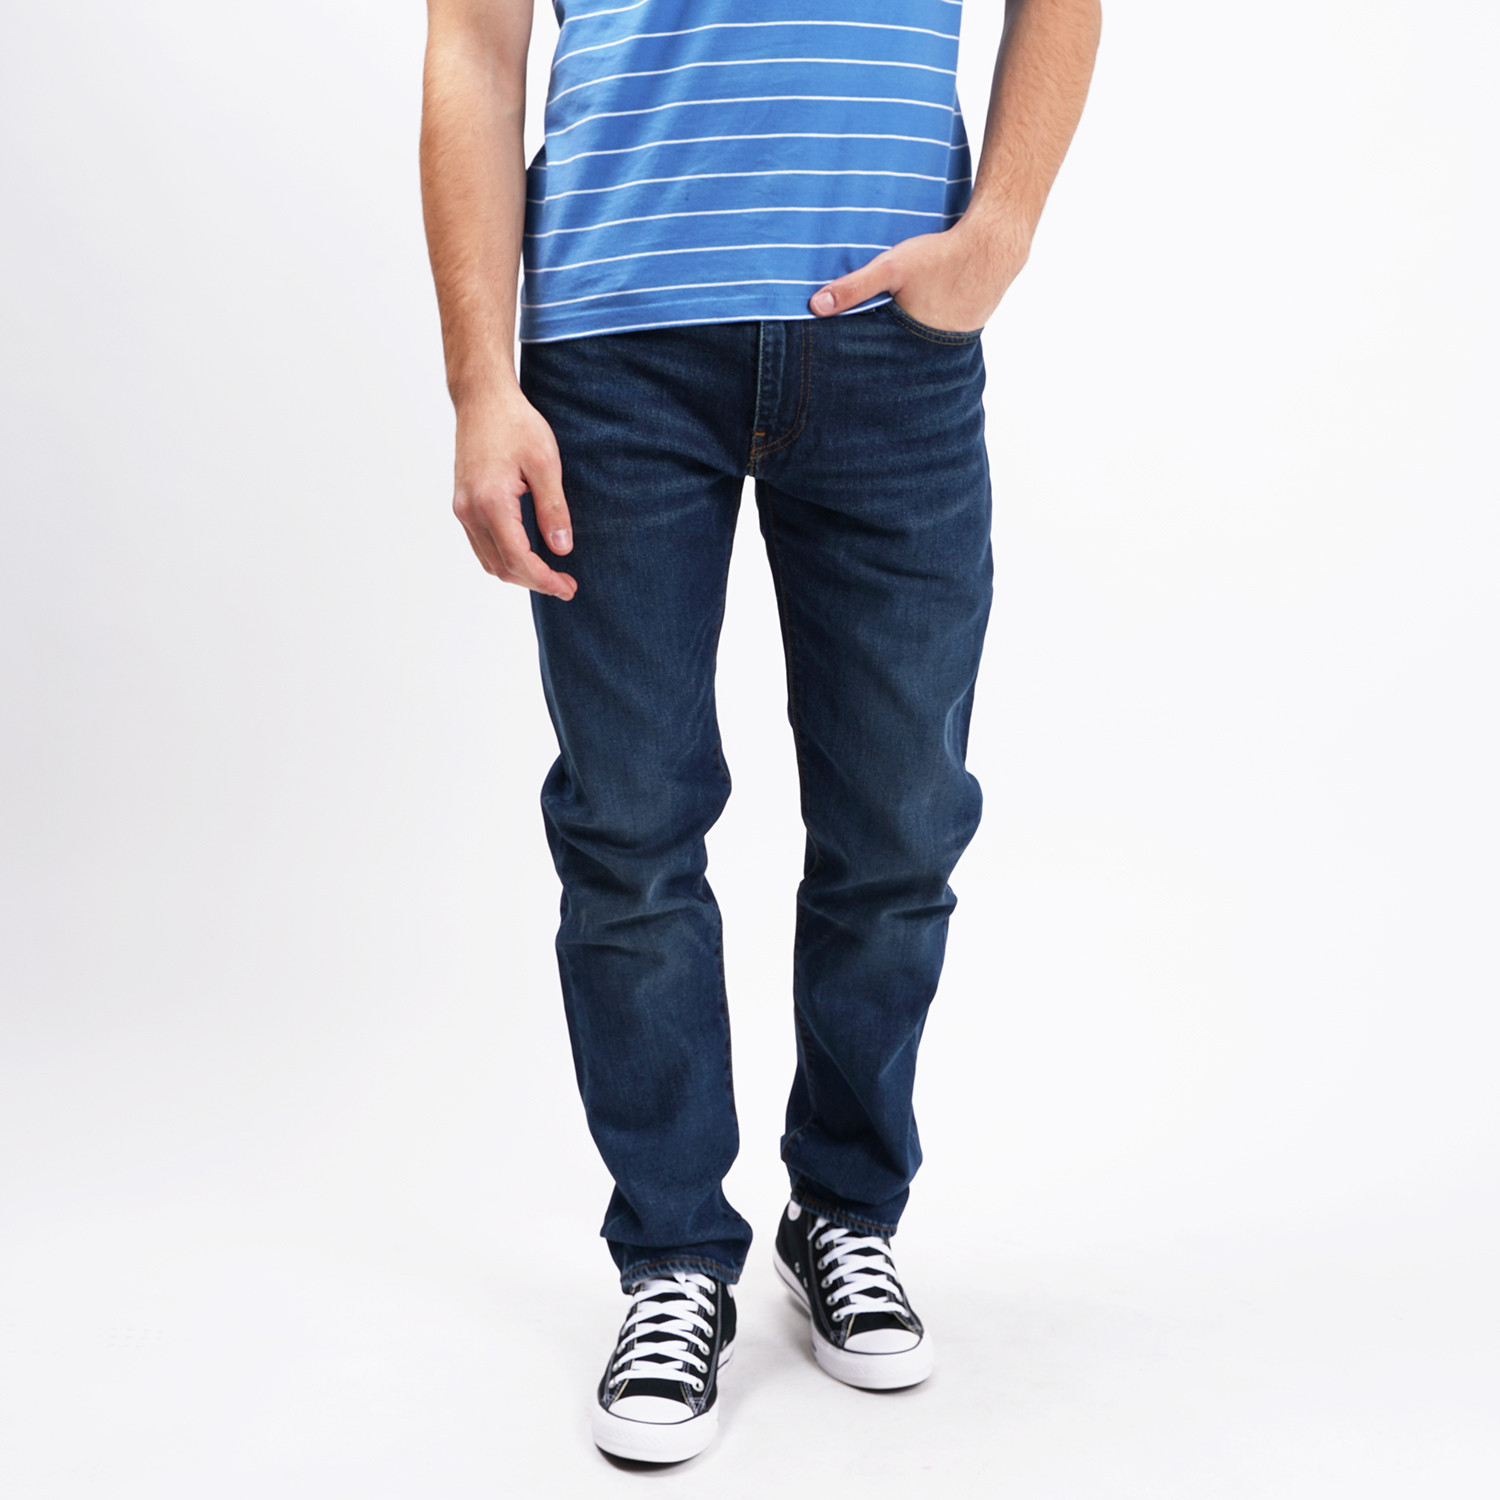 Levi's 502 Taper The Thrill Ανδρικό Τζιν Παντελόνι (9000071839_26100)